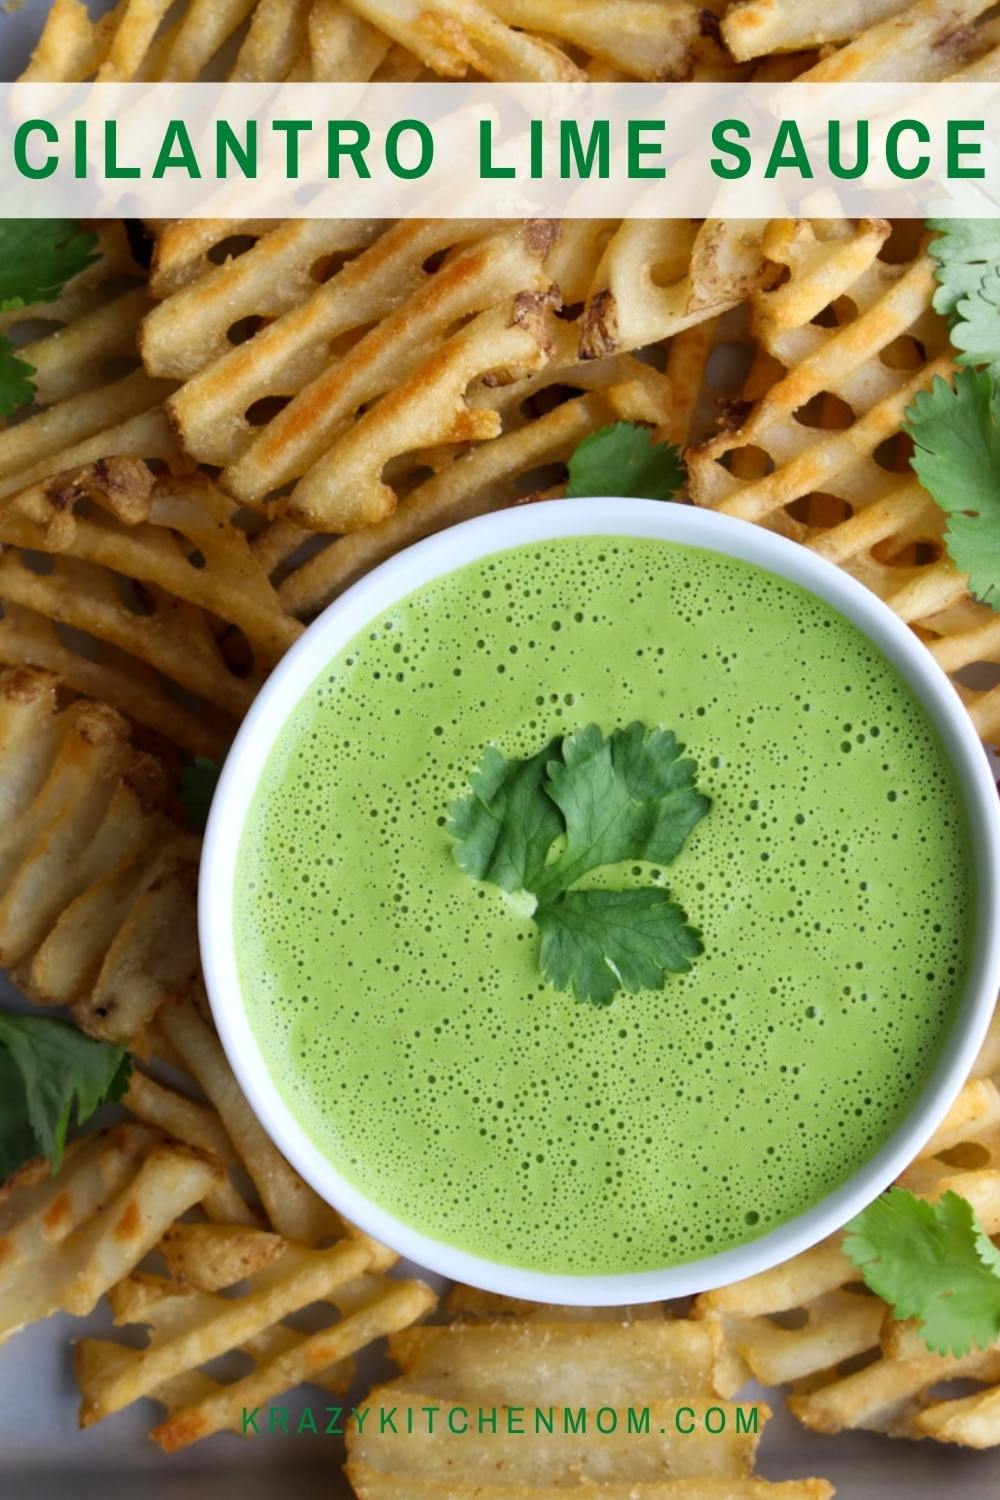 Cilantro Lime Sauce is a creamy, tangy, fresh, and bright sauce. Drizzle it on grilled chicken, pork, or steak. It's also a great sauce for grilled vegetables. via @krazykitchenmom